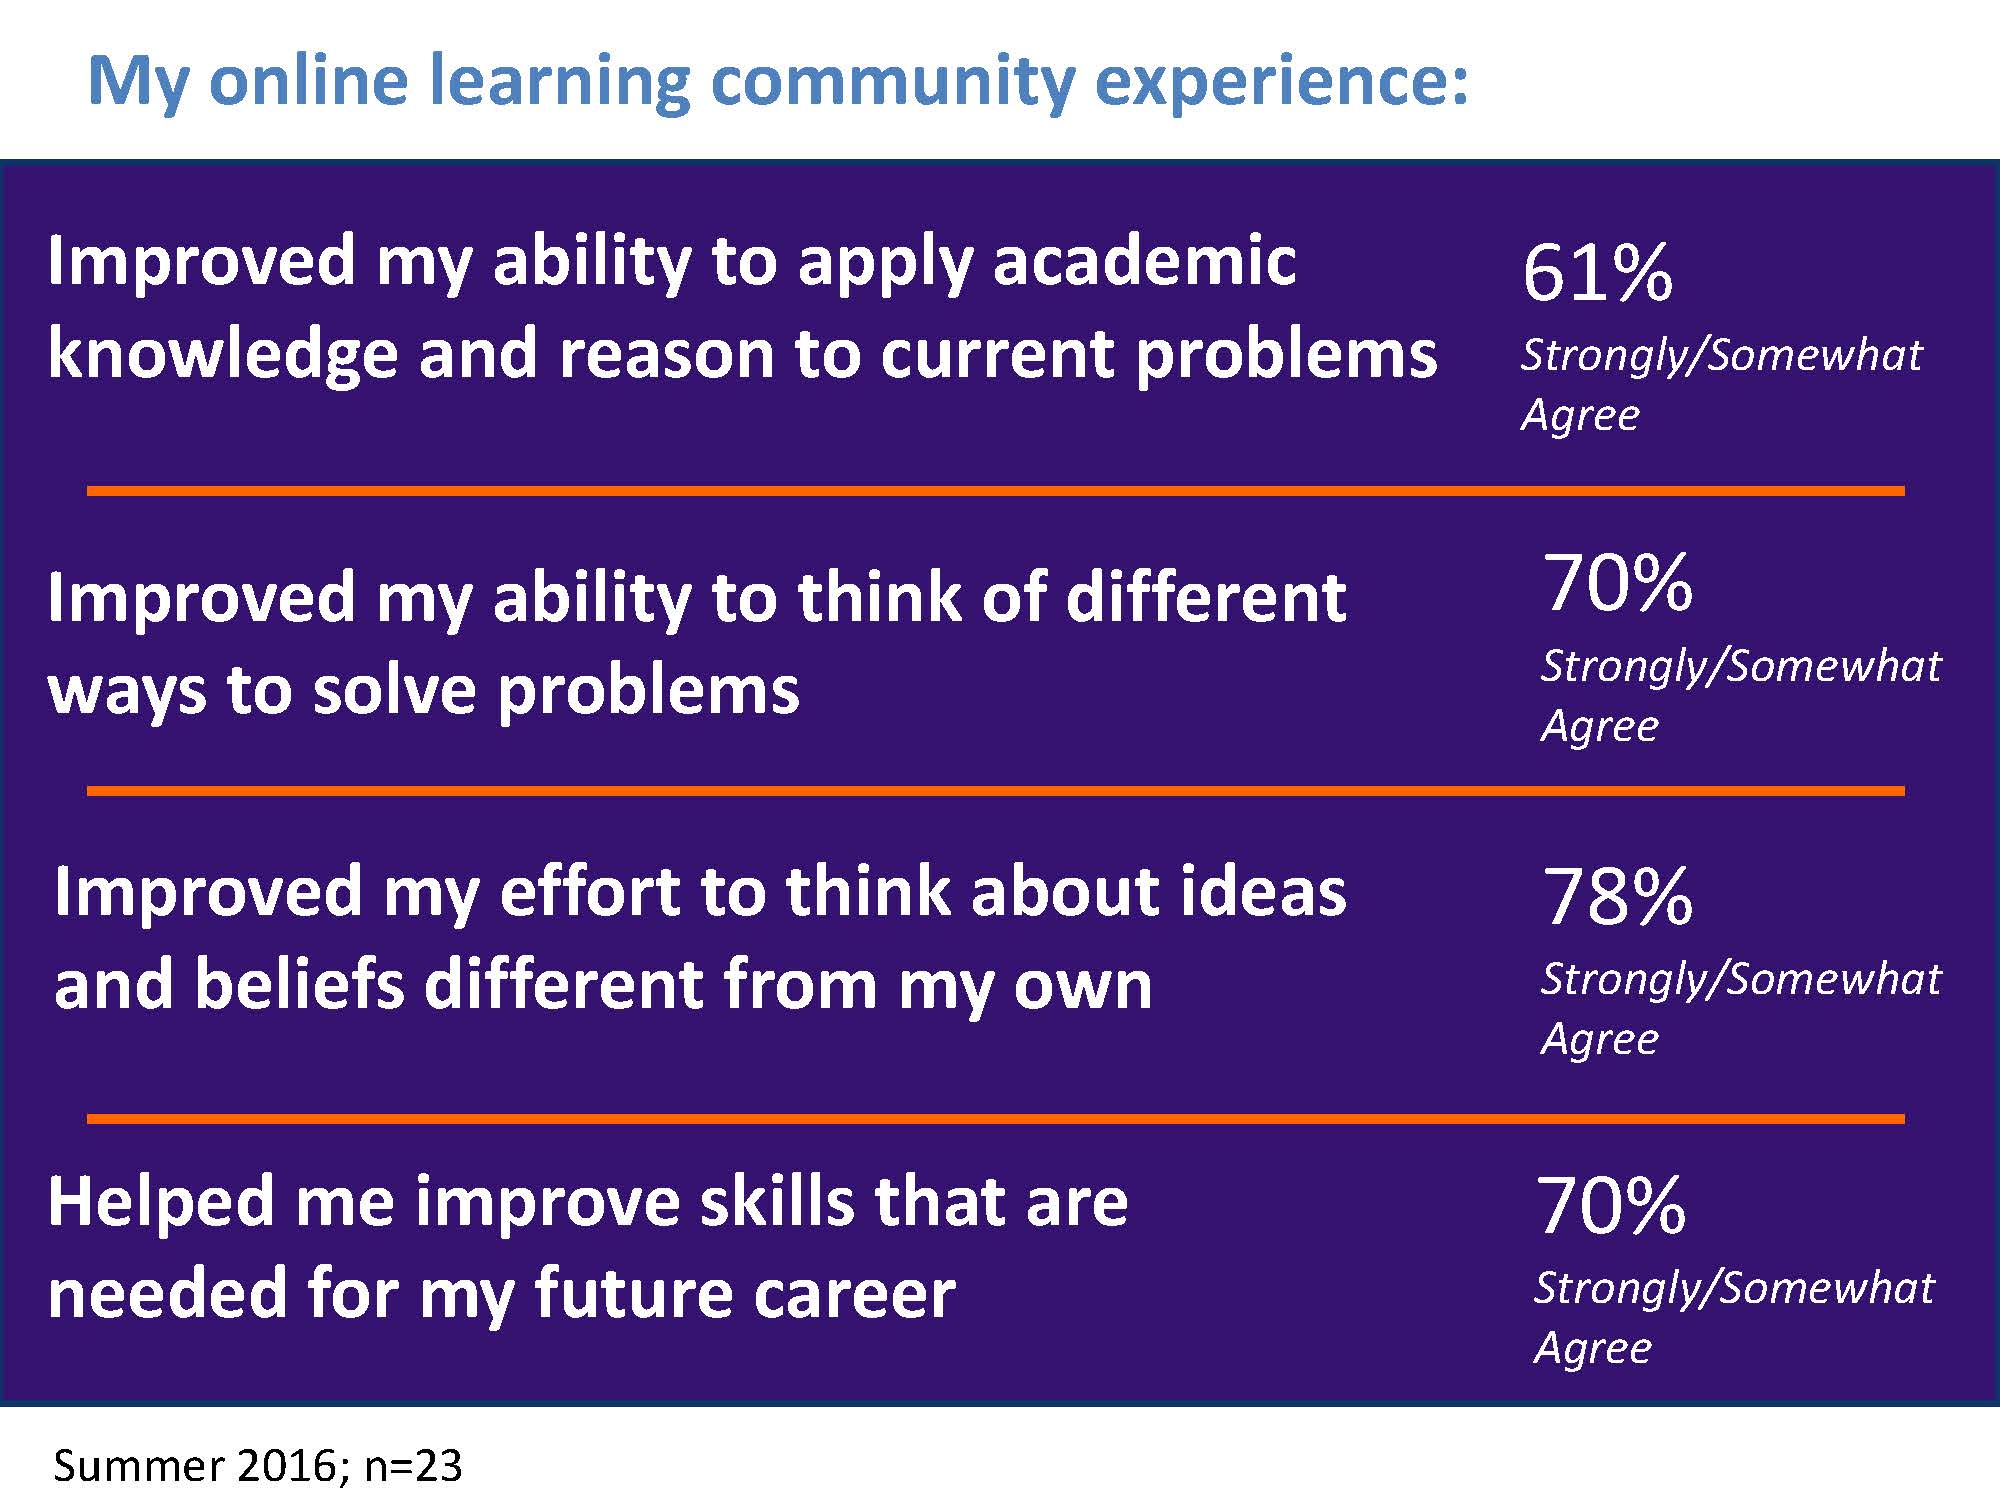 My online learning community experience